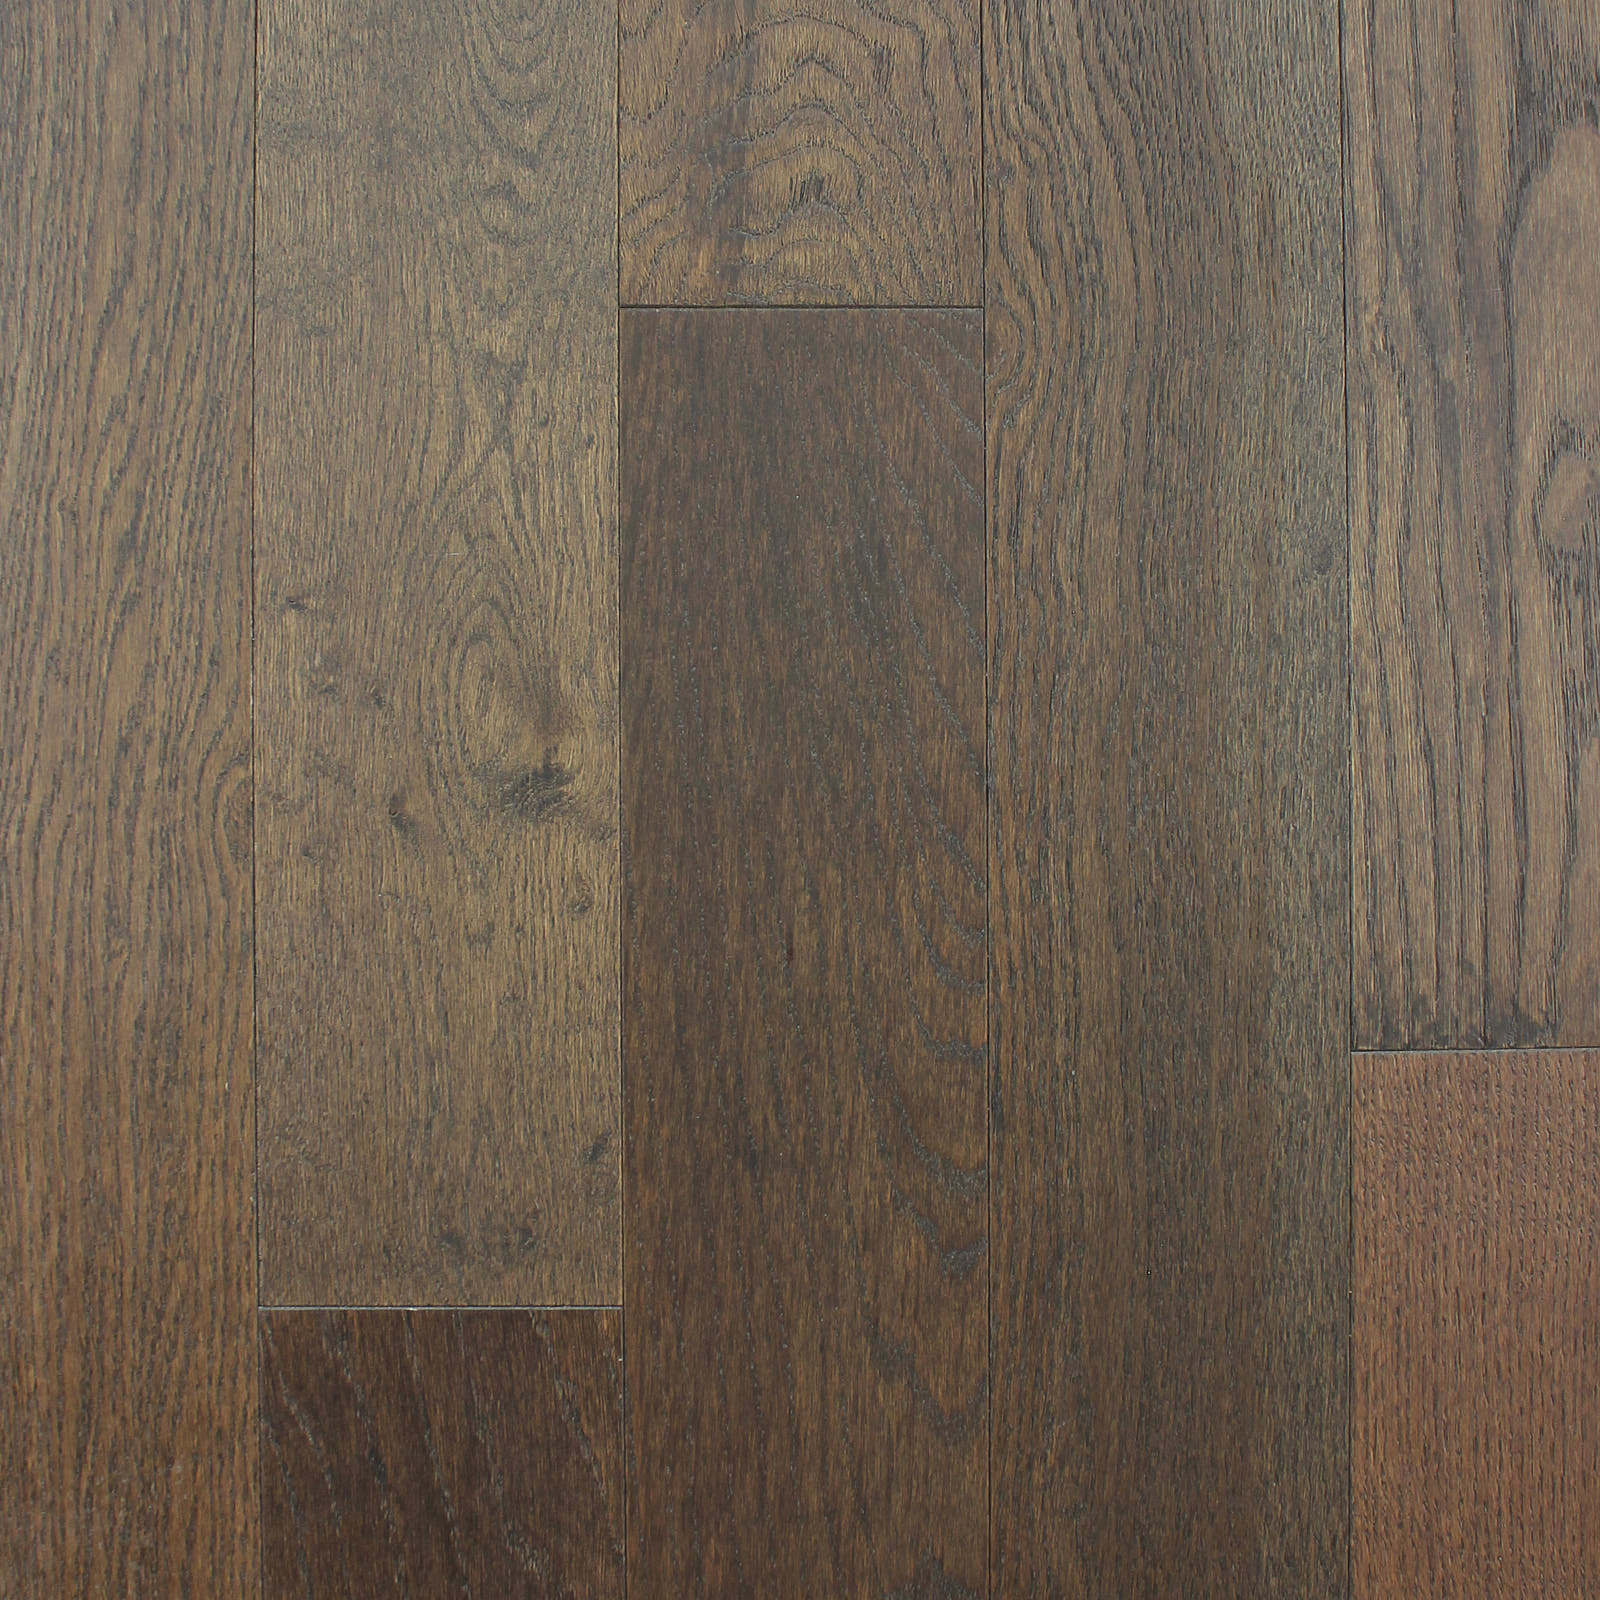 Dorado Luxor Engineered Hardwood Flooring